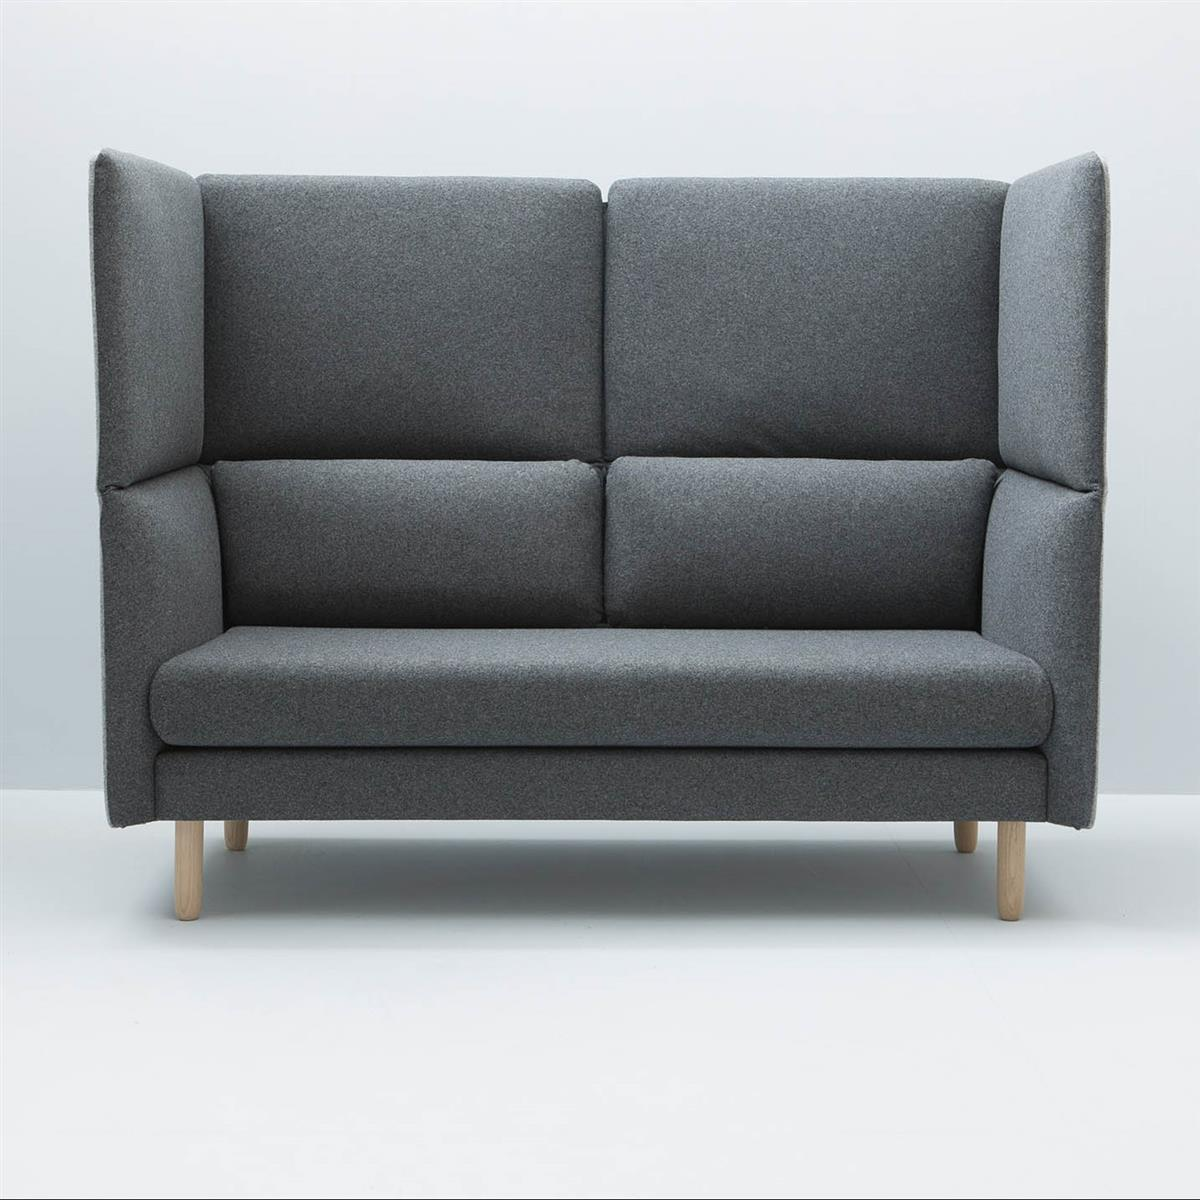 DUO Sofa. Eikeben. Innetekstil: Gr.4. Yttertekstil: Gr.2